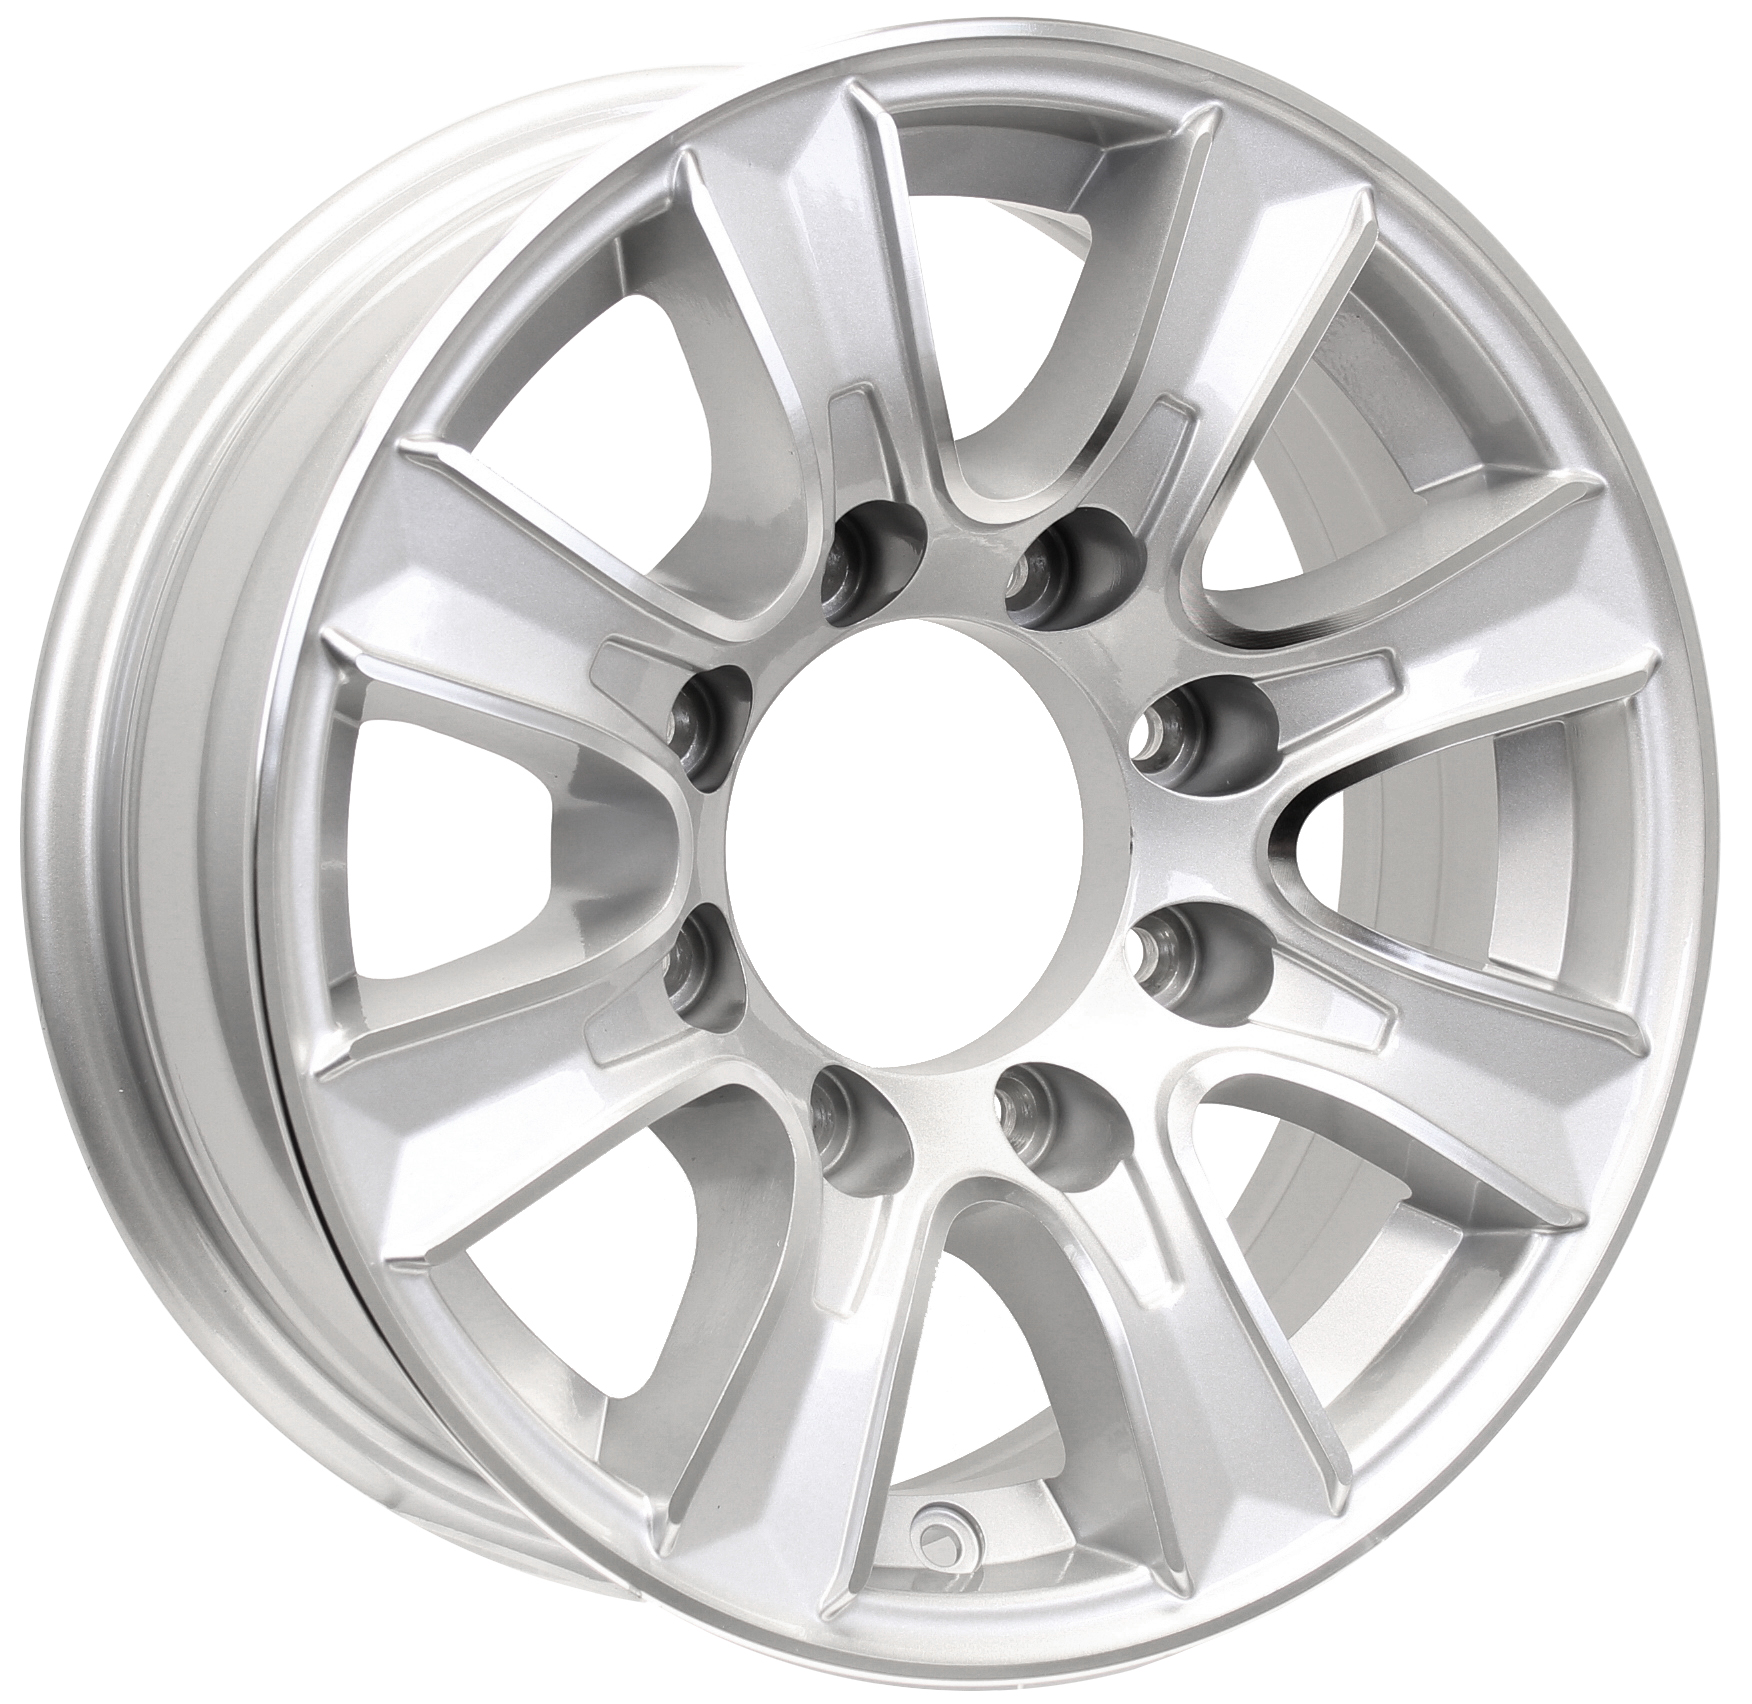 Thoroughbred 16x6; 8-Lug Silver Aluminum Trailer Wheel Image